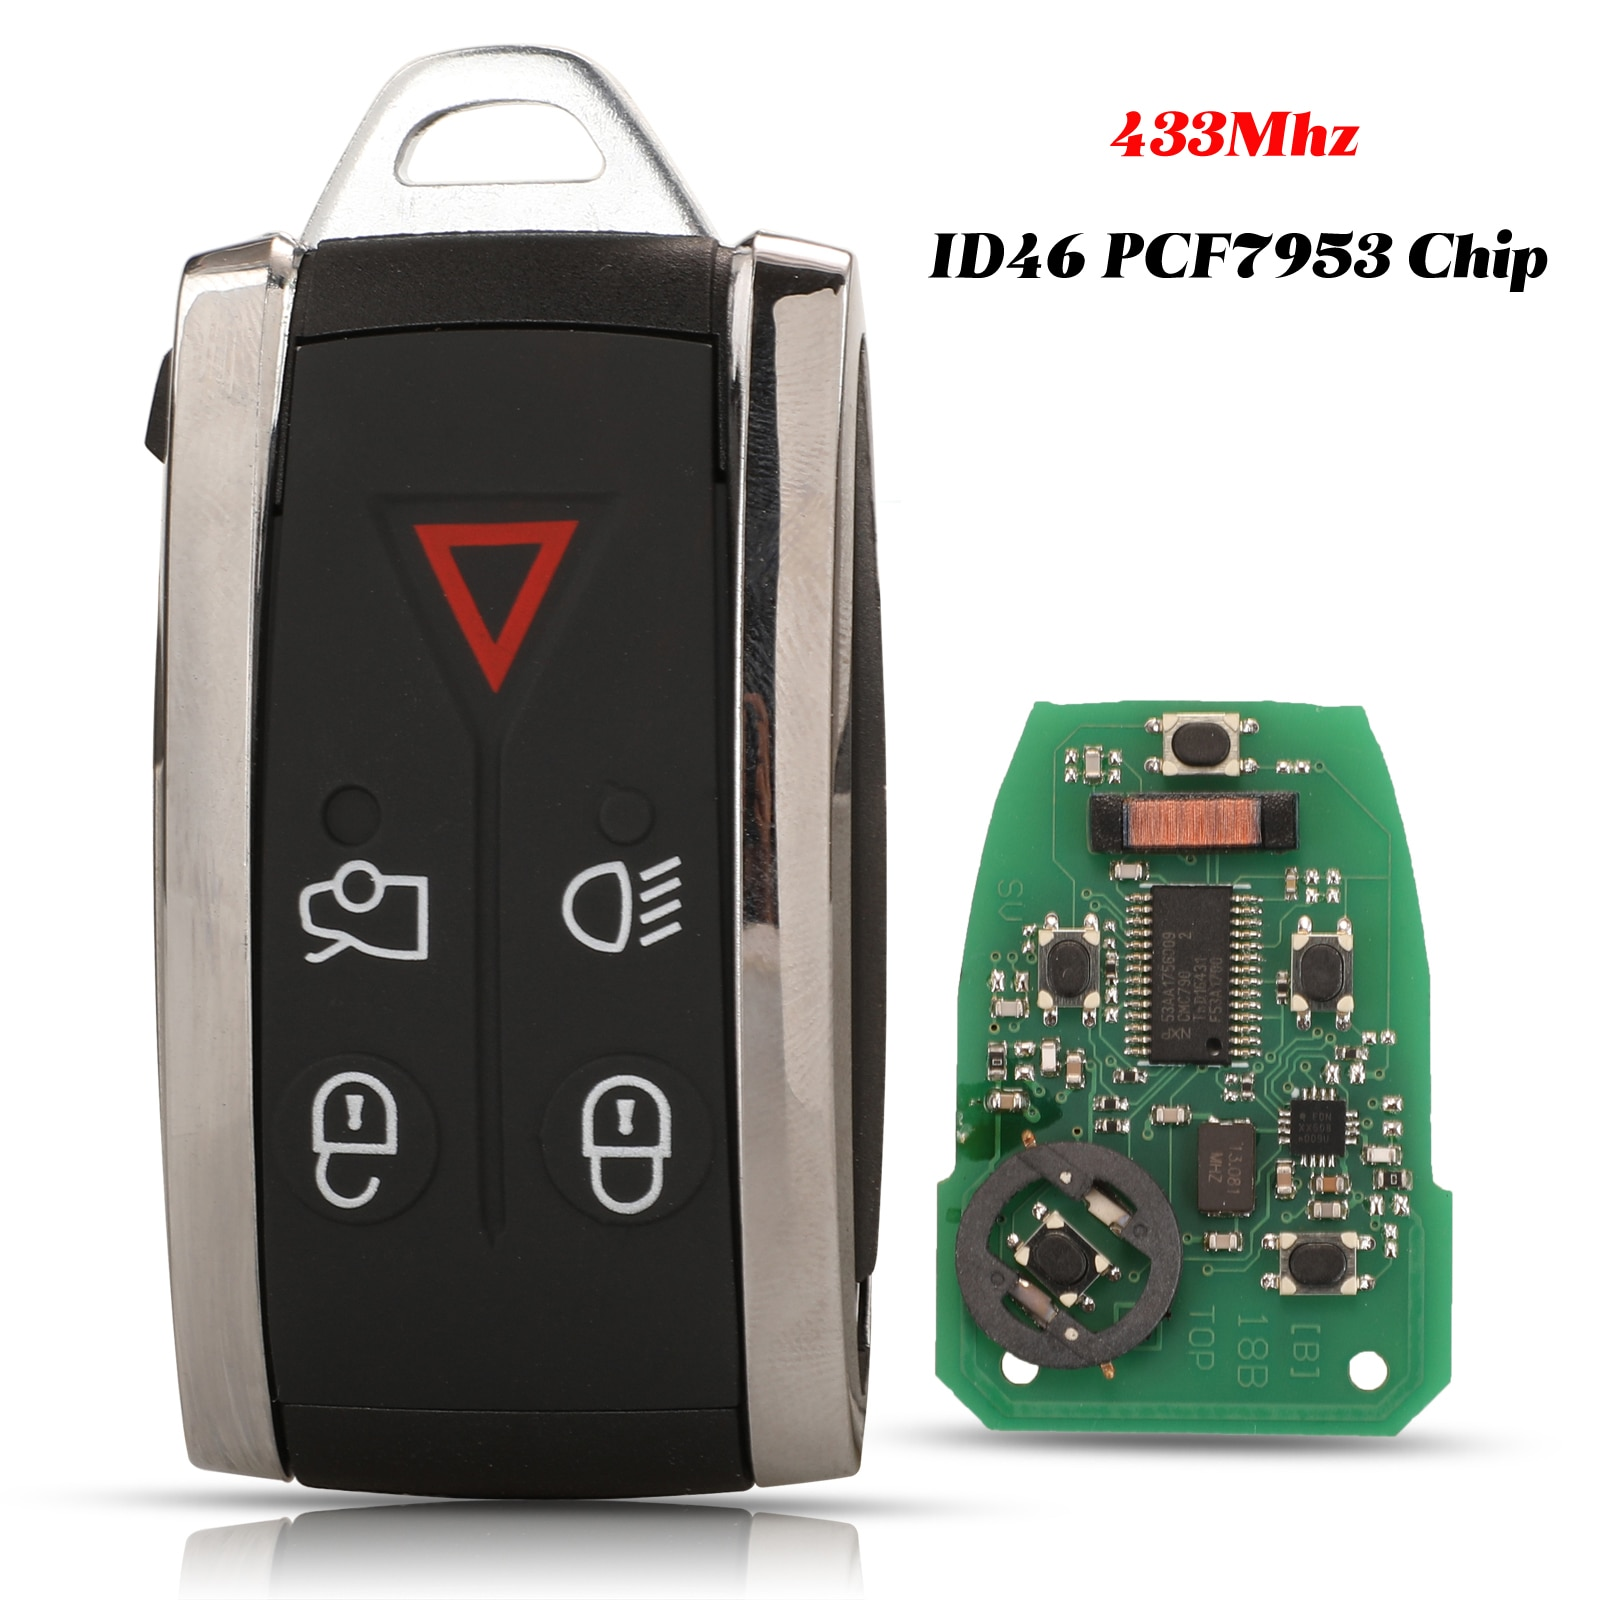 jingyuqin 5 Buttons 433Mhz Remote Smart Car Key ID46 PCF7953 Chip Fob For Jaguar XF XF XFR XK XKR 2009 2010 2011 2012 2013